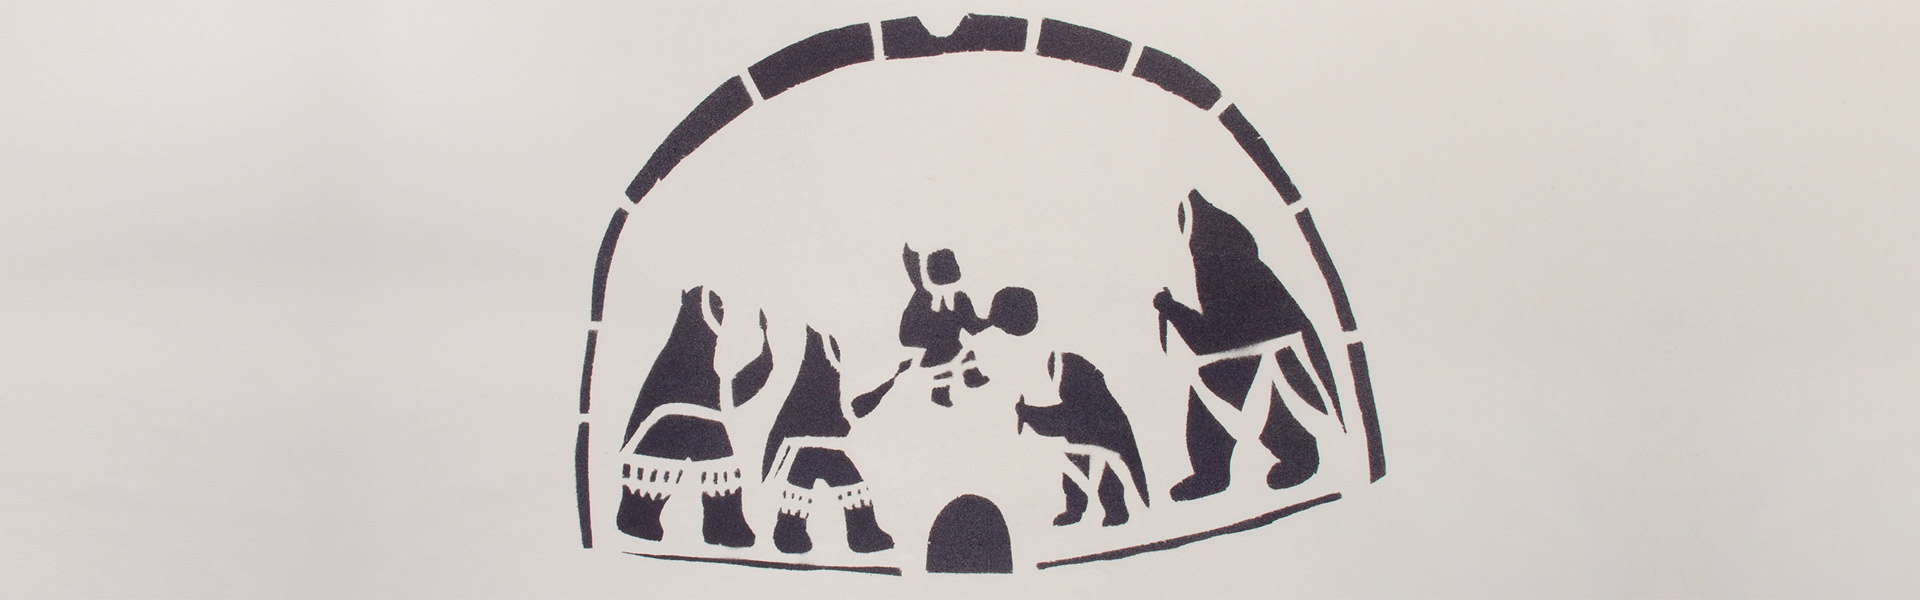 """Dance in igloo,"" a sealskin stencil on paper by Helen Kalvakadlak."